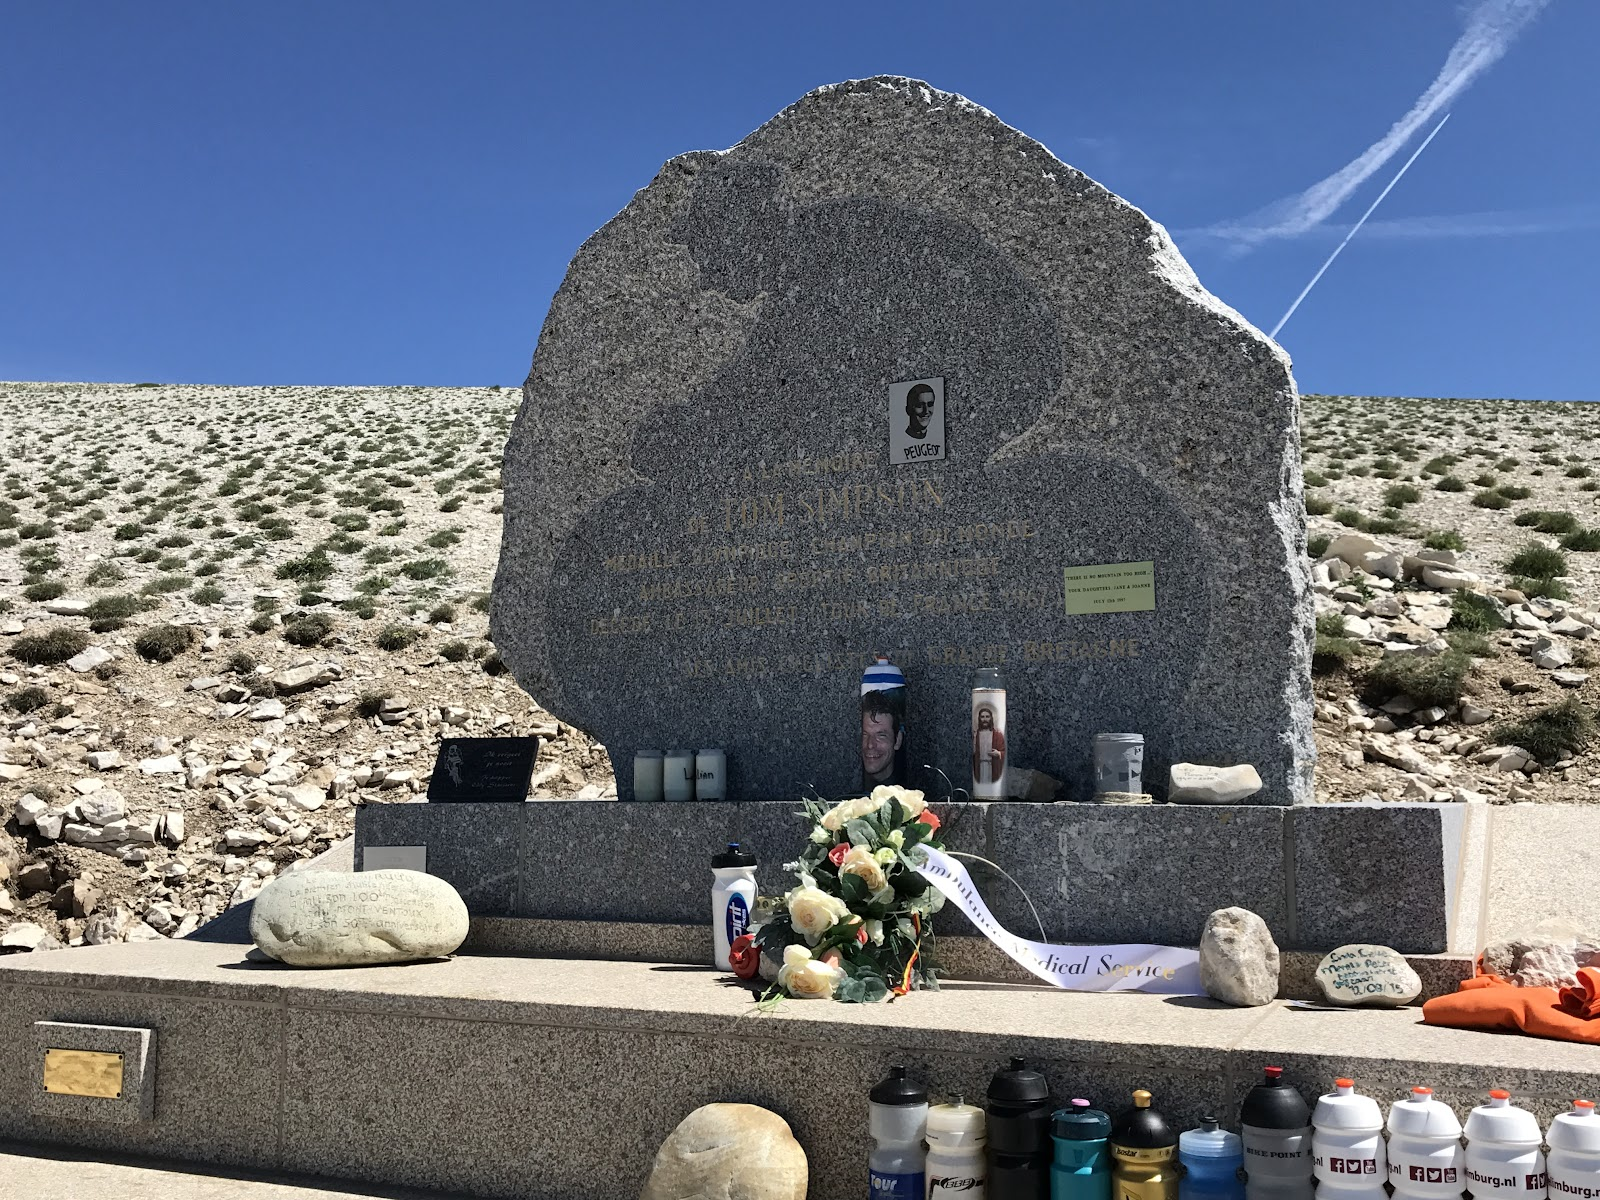 Climb Mont Ventoux by bicycle - Tom Simpson Memorial - water bottles and flowers